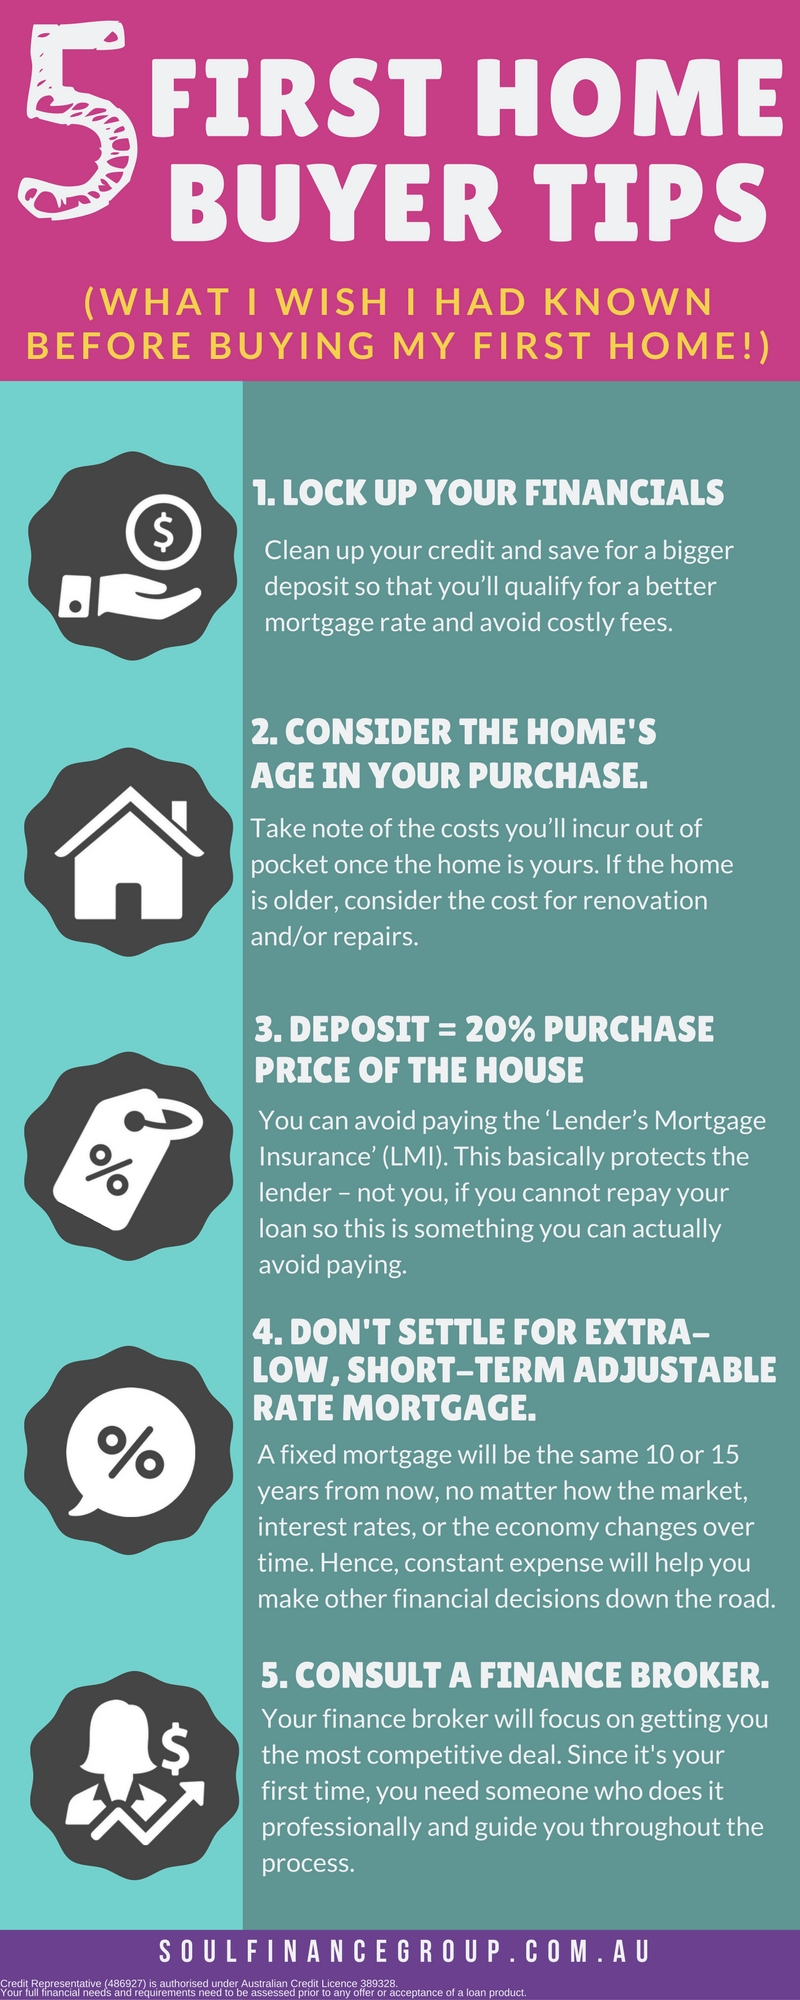 5 First Home Buyer Tips What I Wish I Had Known Before Buying My